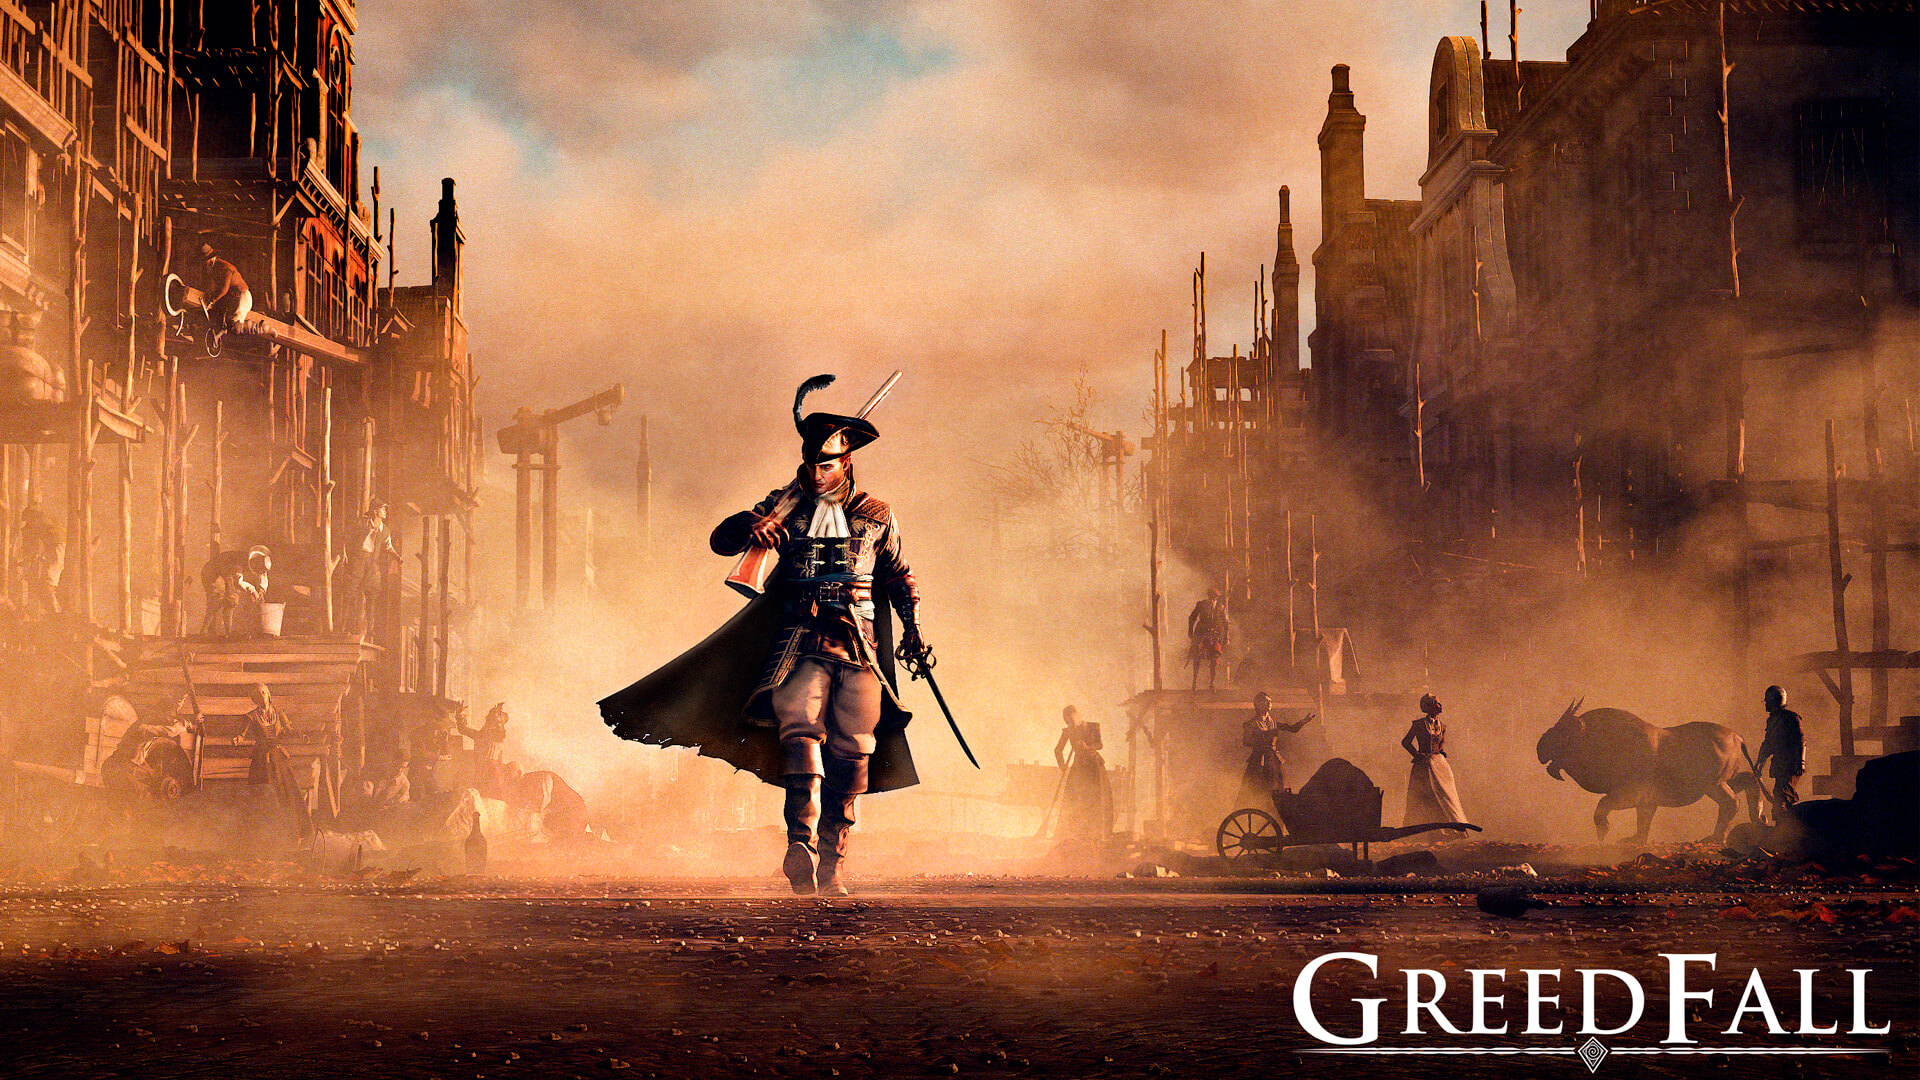 Greedfall gamescom 2019